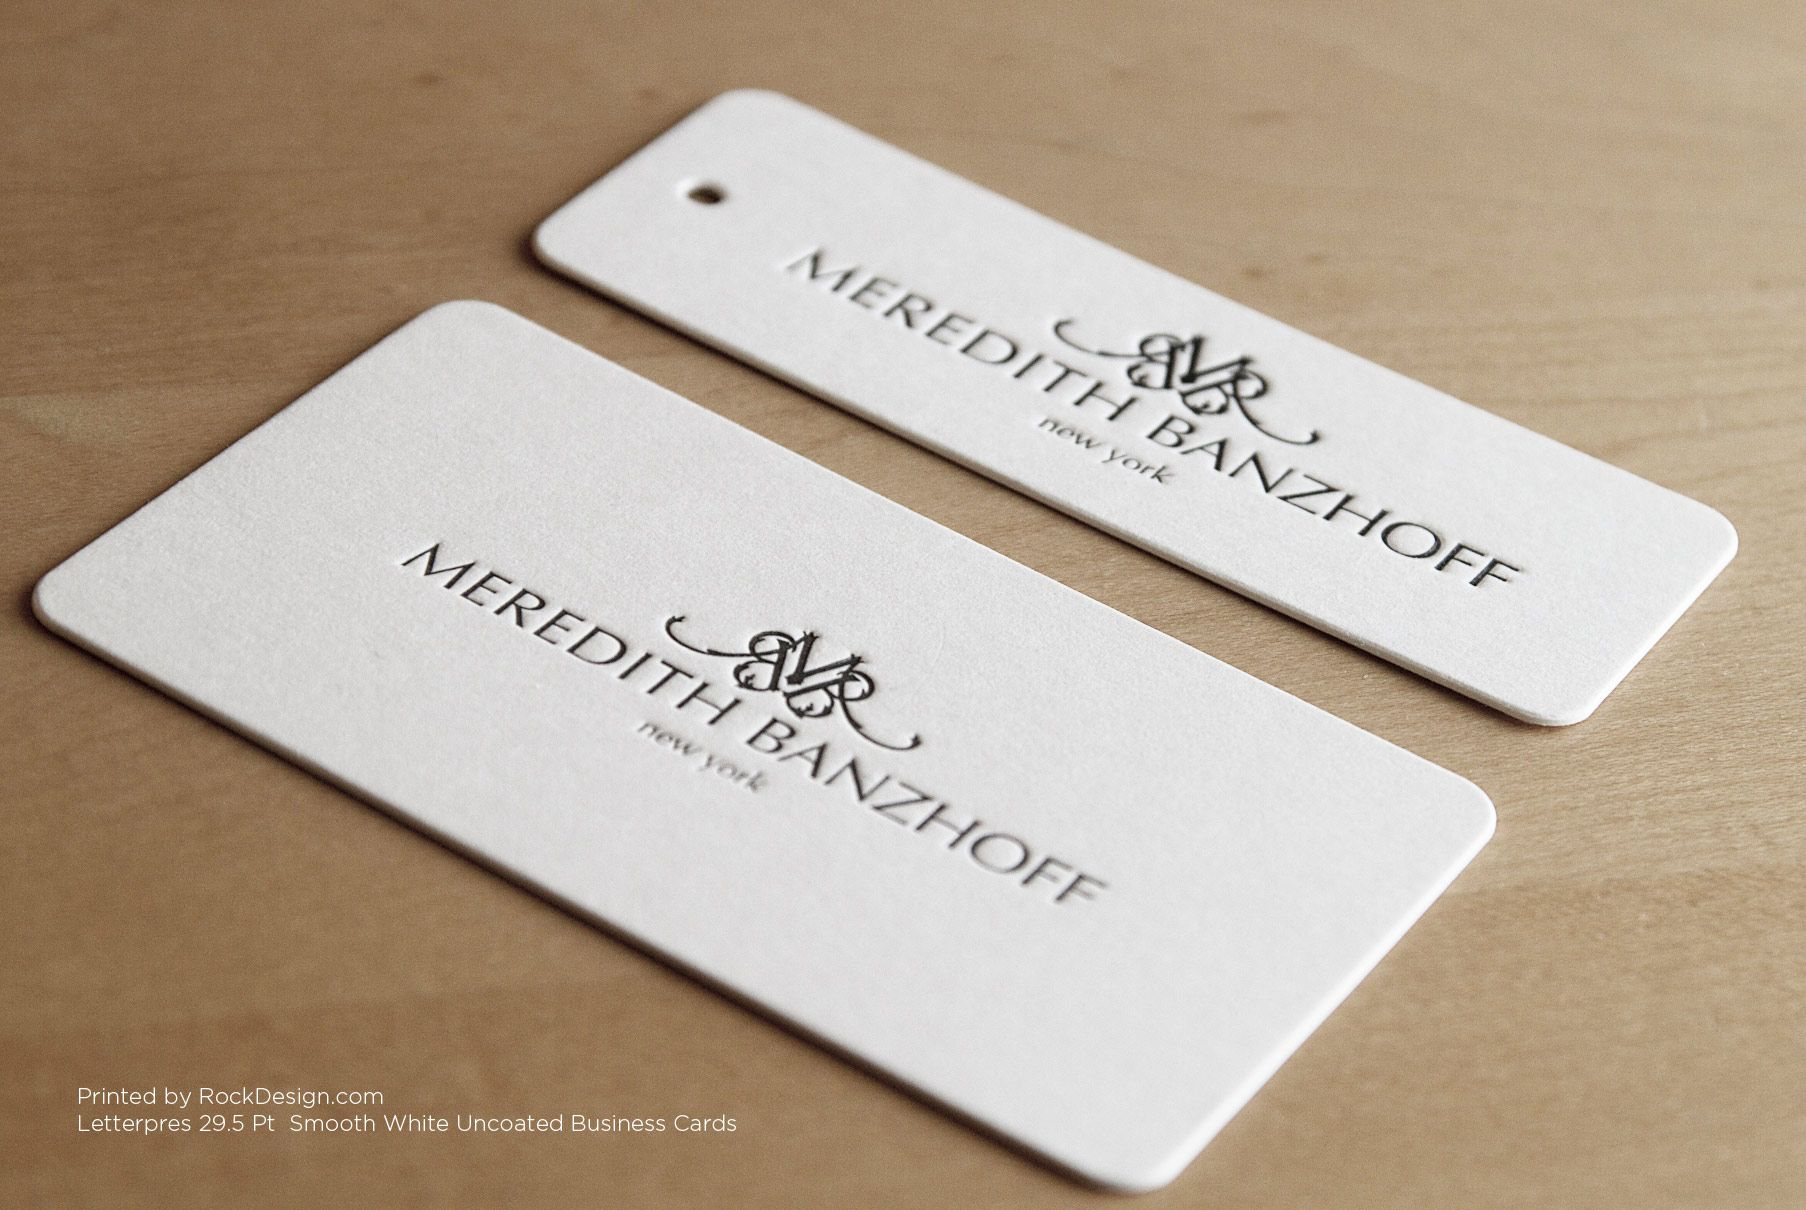 RockDesign.com | Letterpress Business Cards → http://www ...